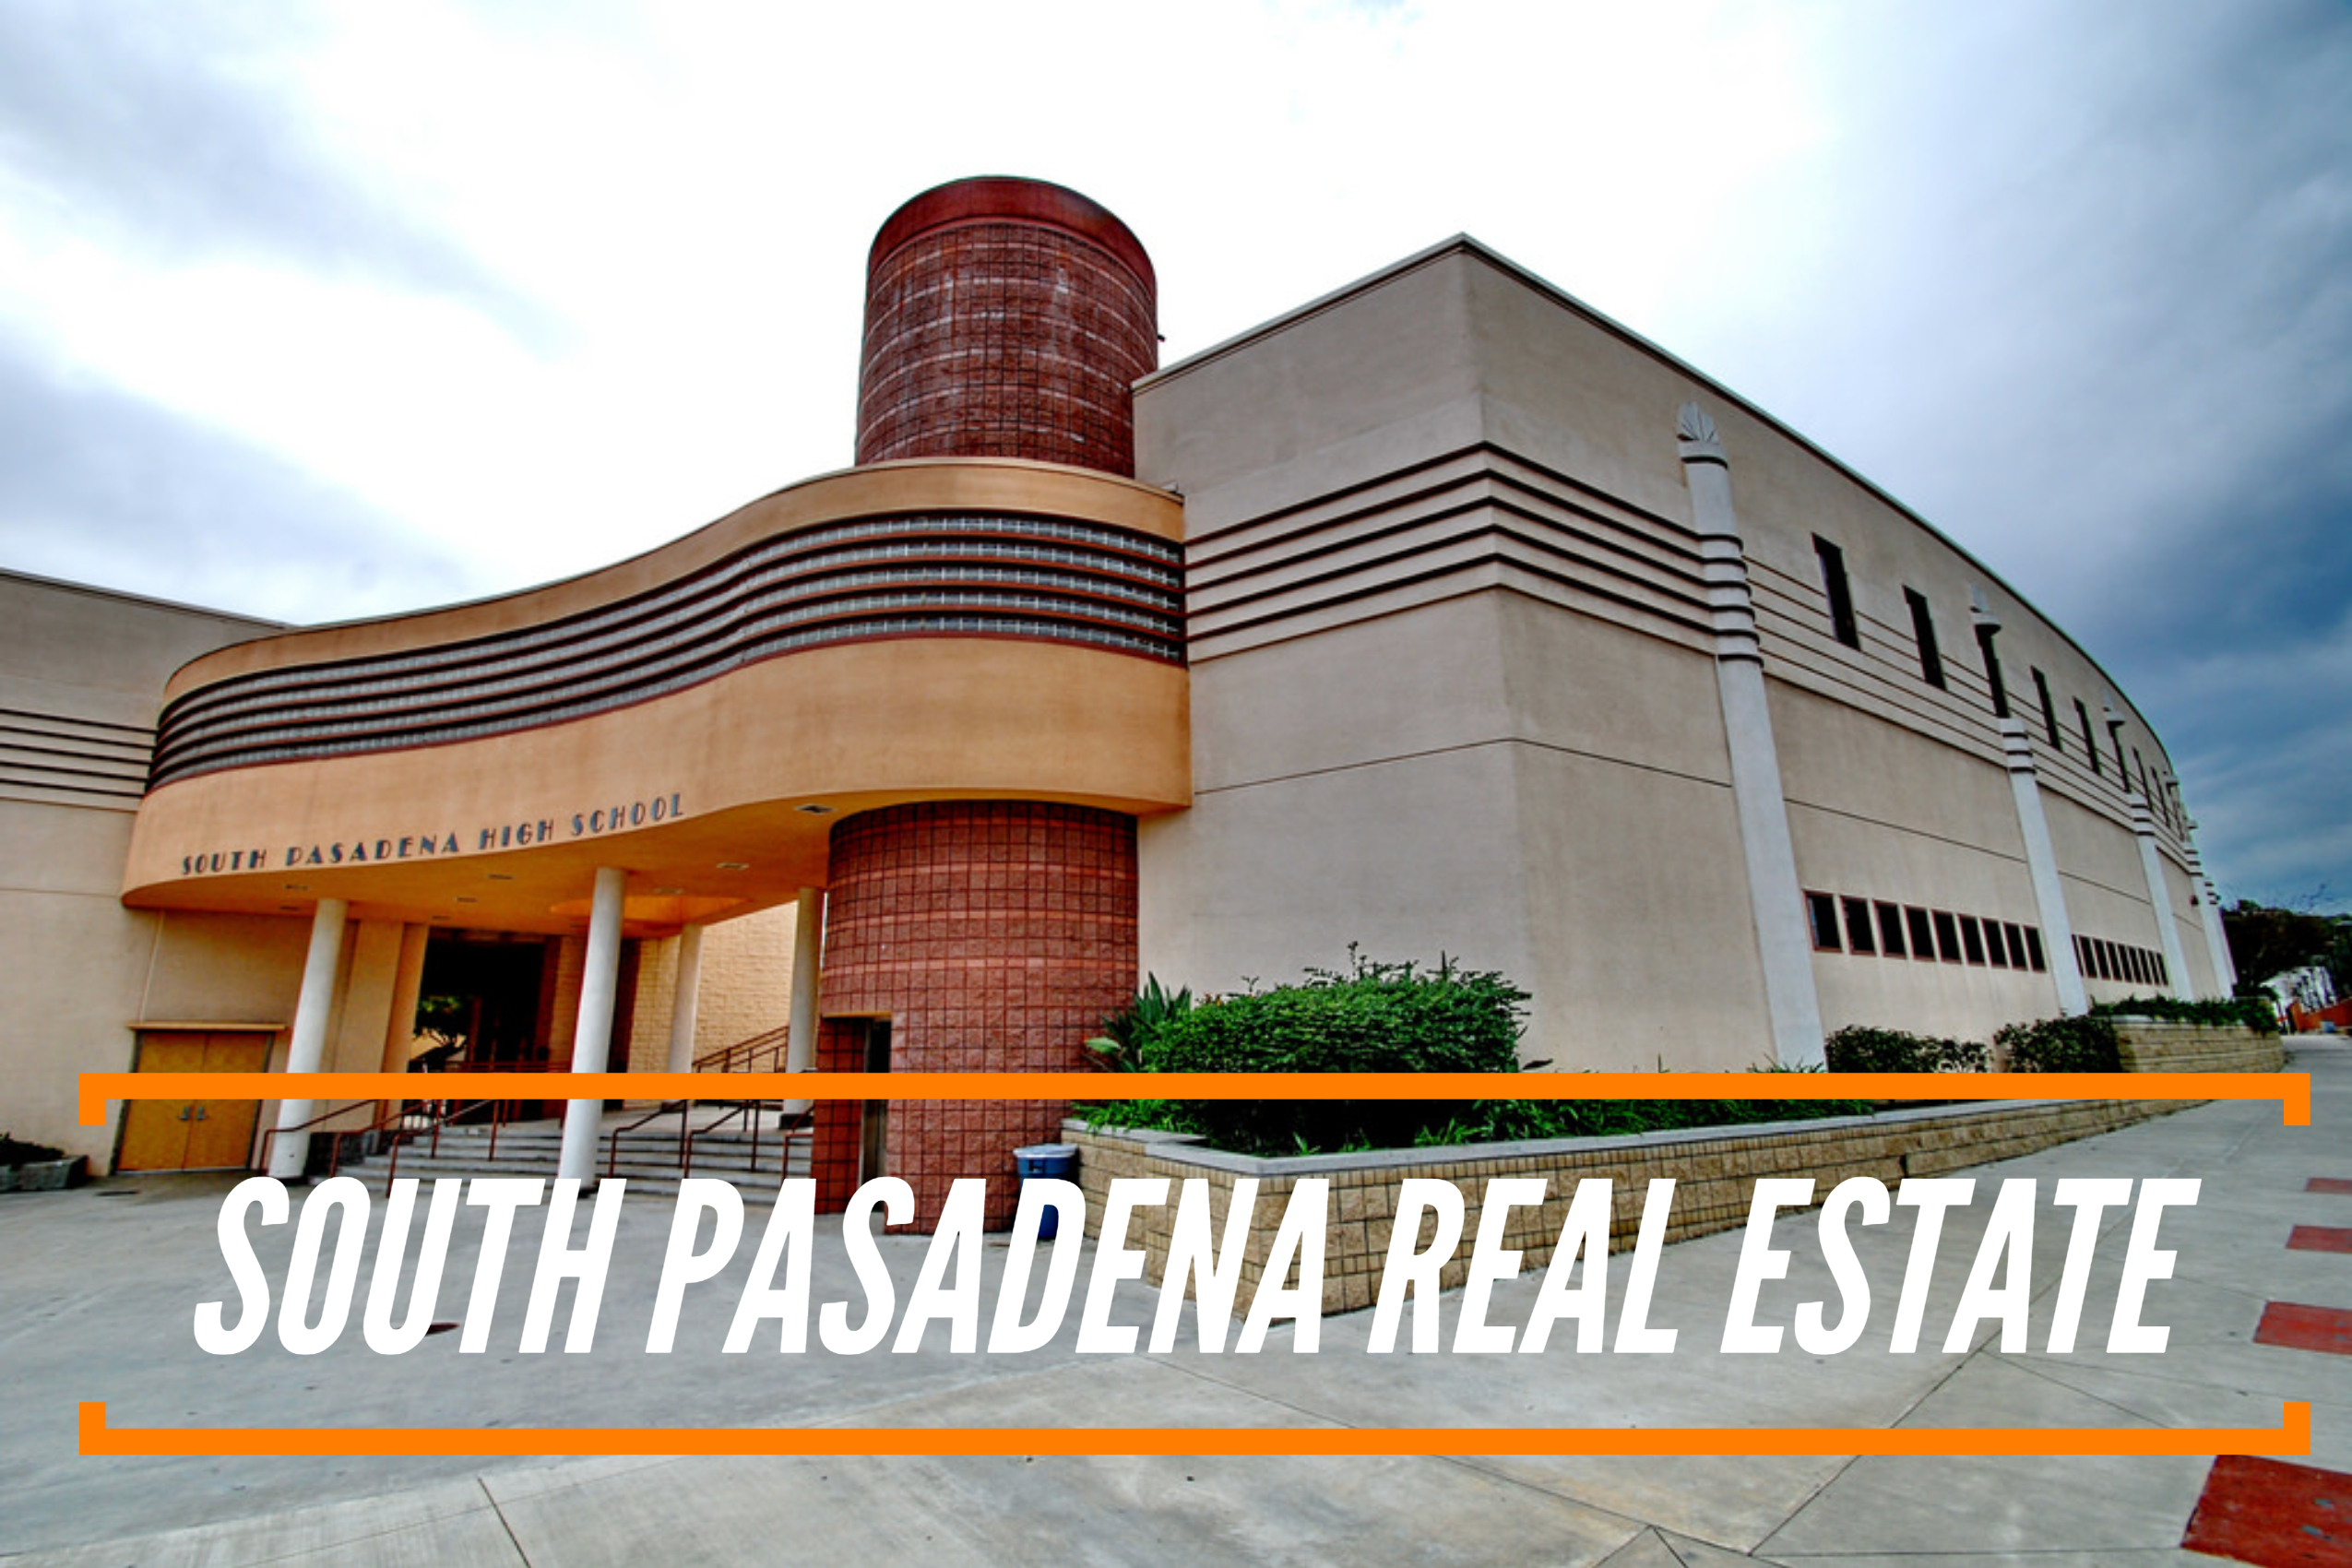 Glendale-Real-Estate-Agent-Los-Angeles-Paul-Argueta-TalkToPaul-Luxury-Real-Estate-Agent-Professional-Athlete-Relocation